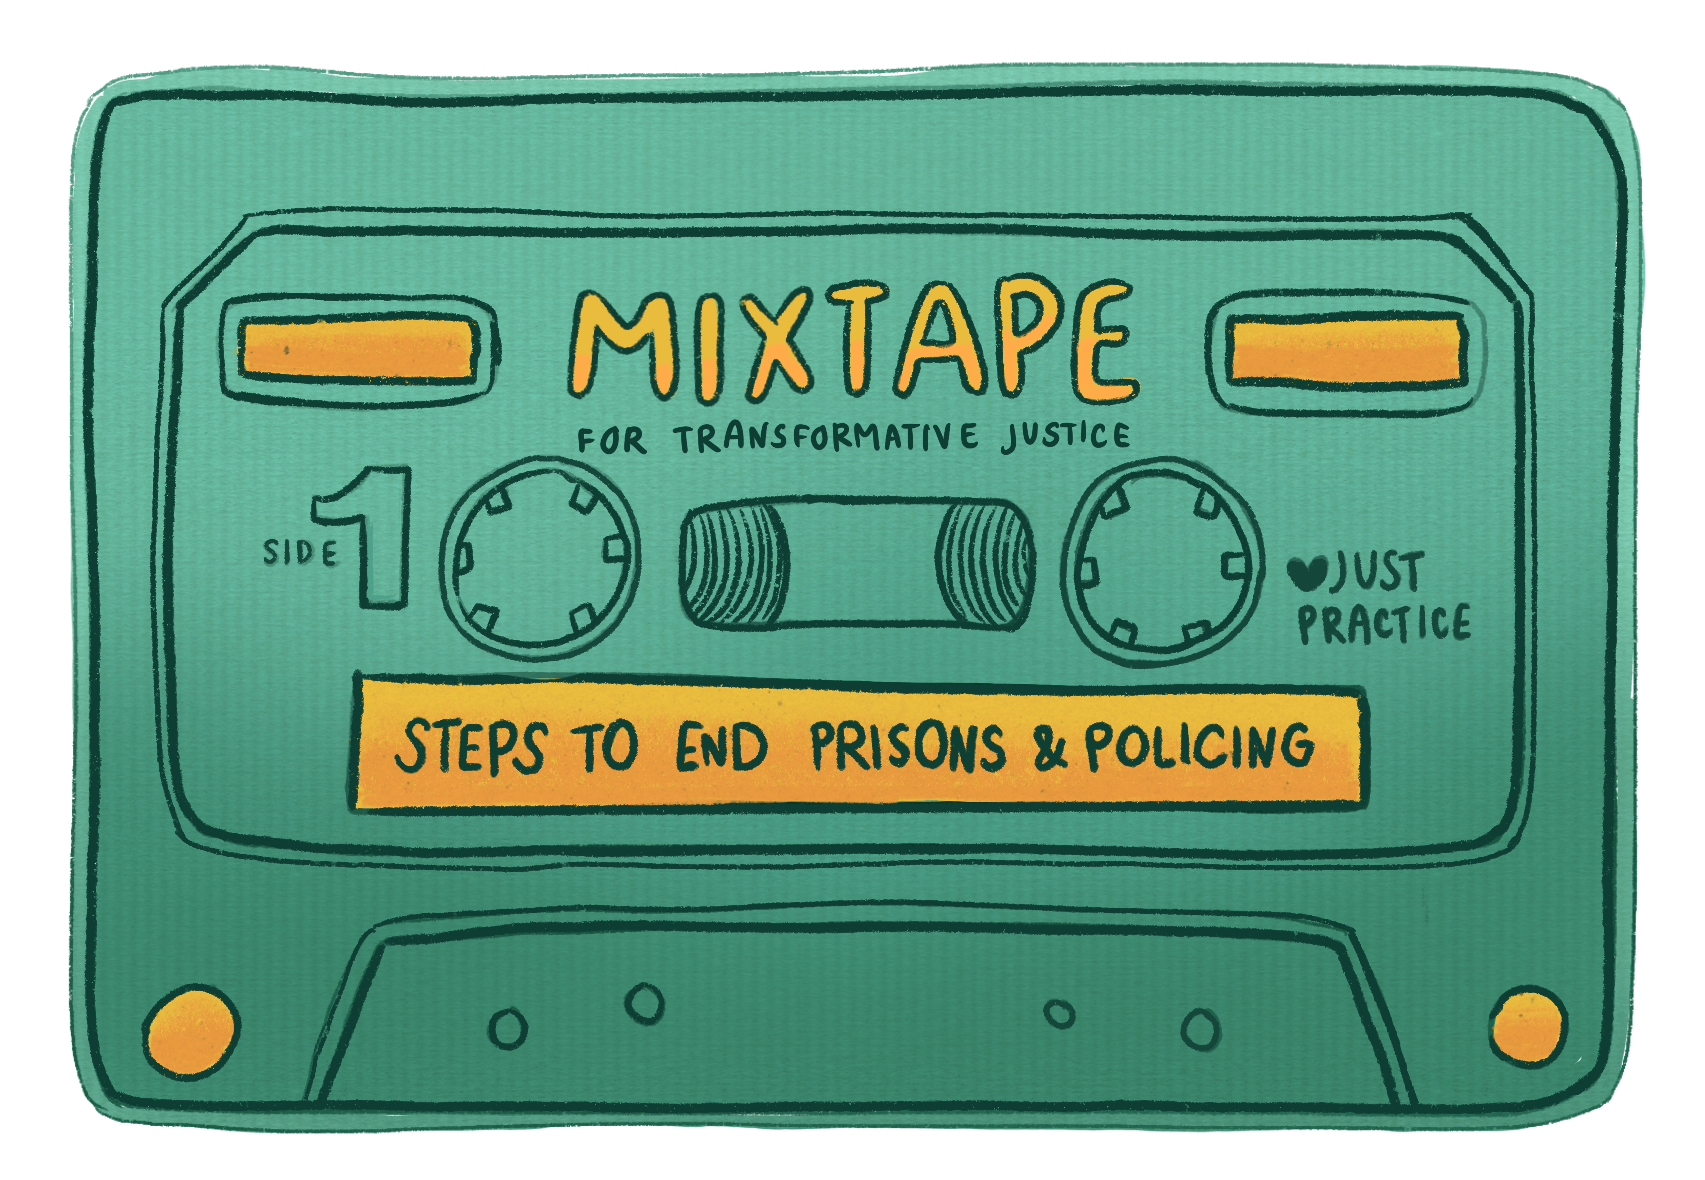 """A green cassette tape with the words """"Mixtape for Transformative Justice: Steps to End Prisons and Policing""""."""